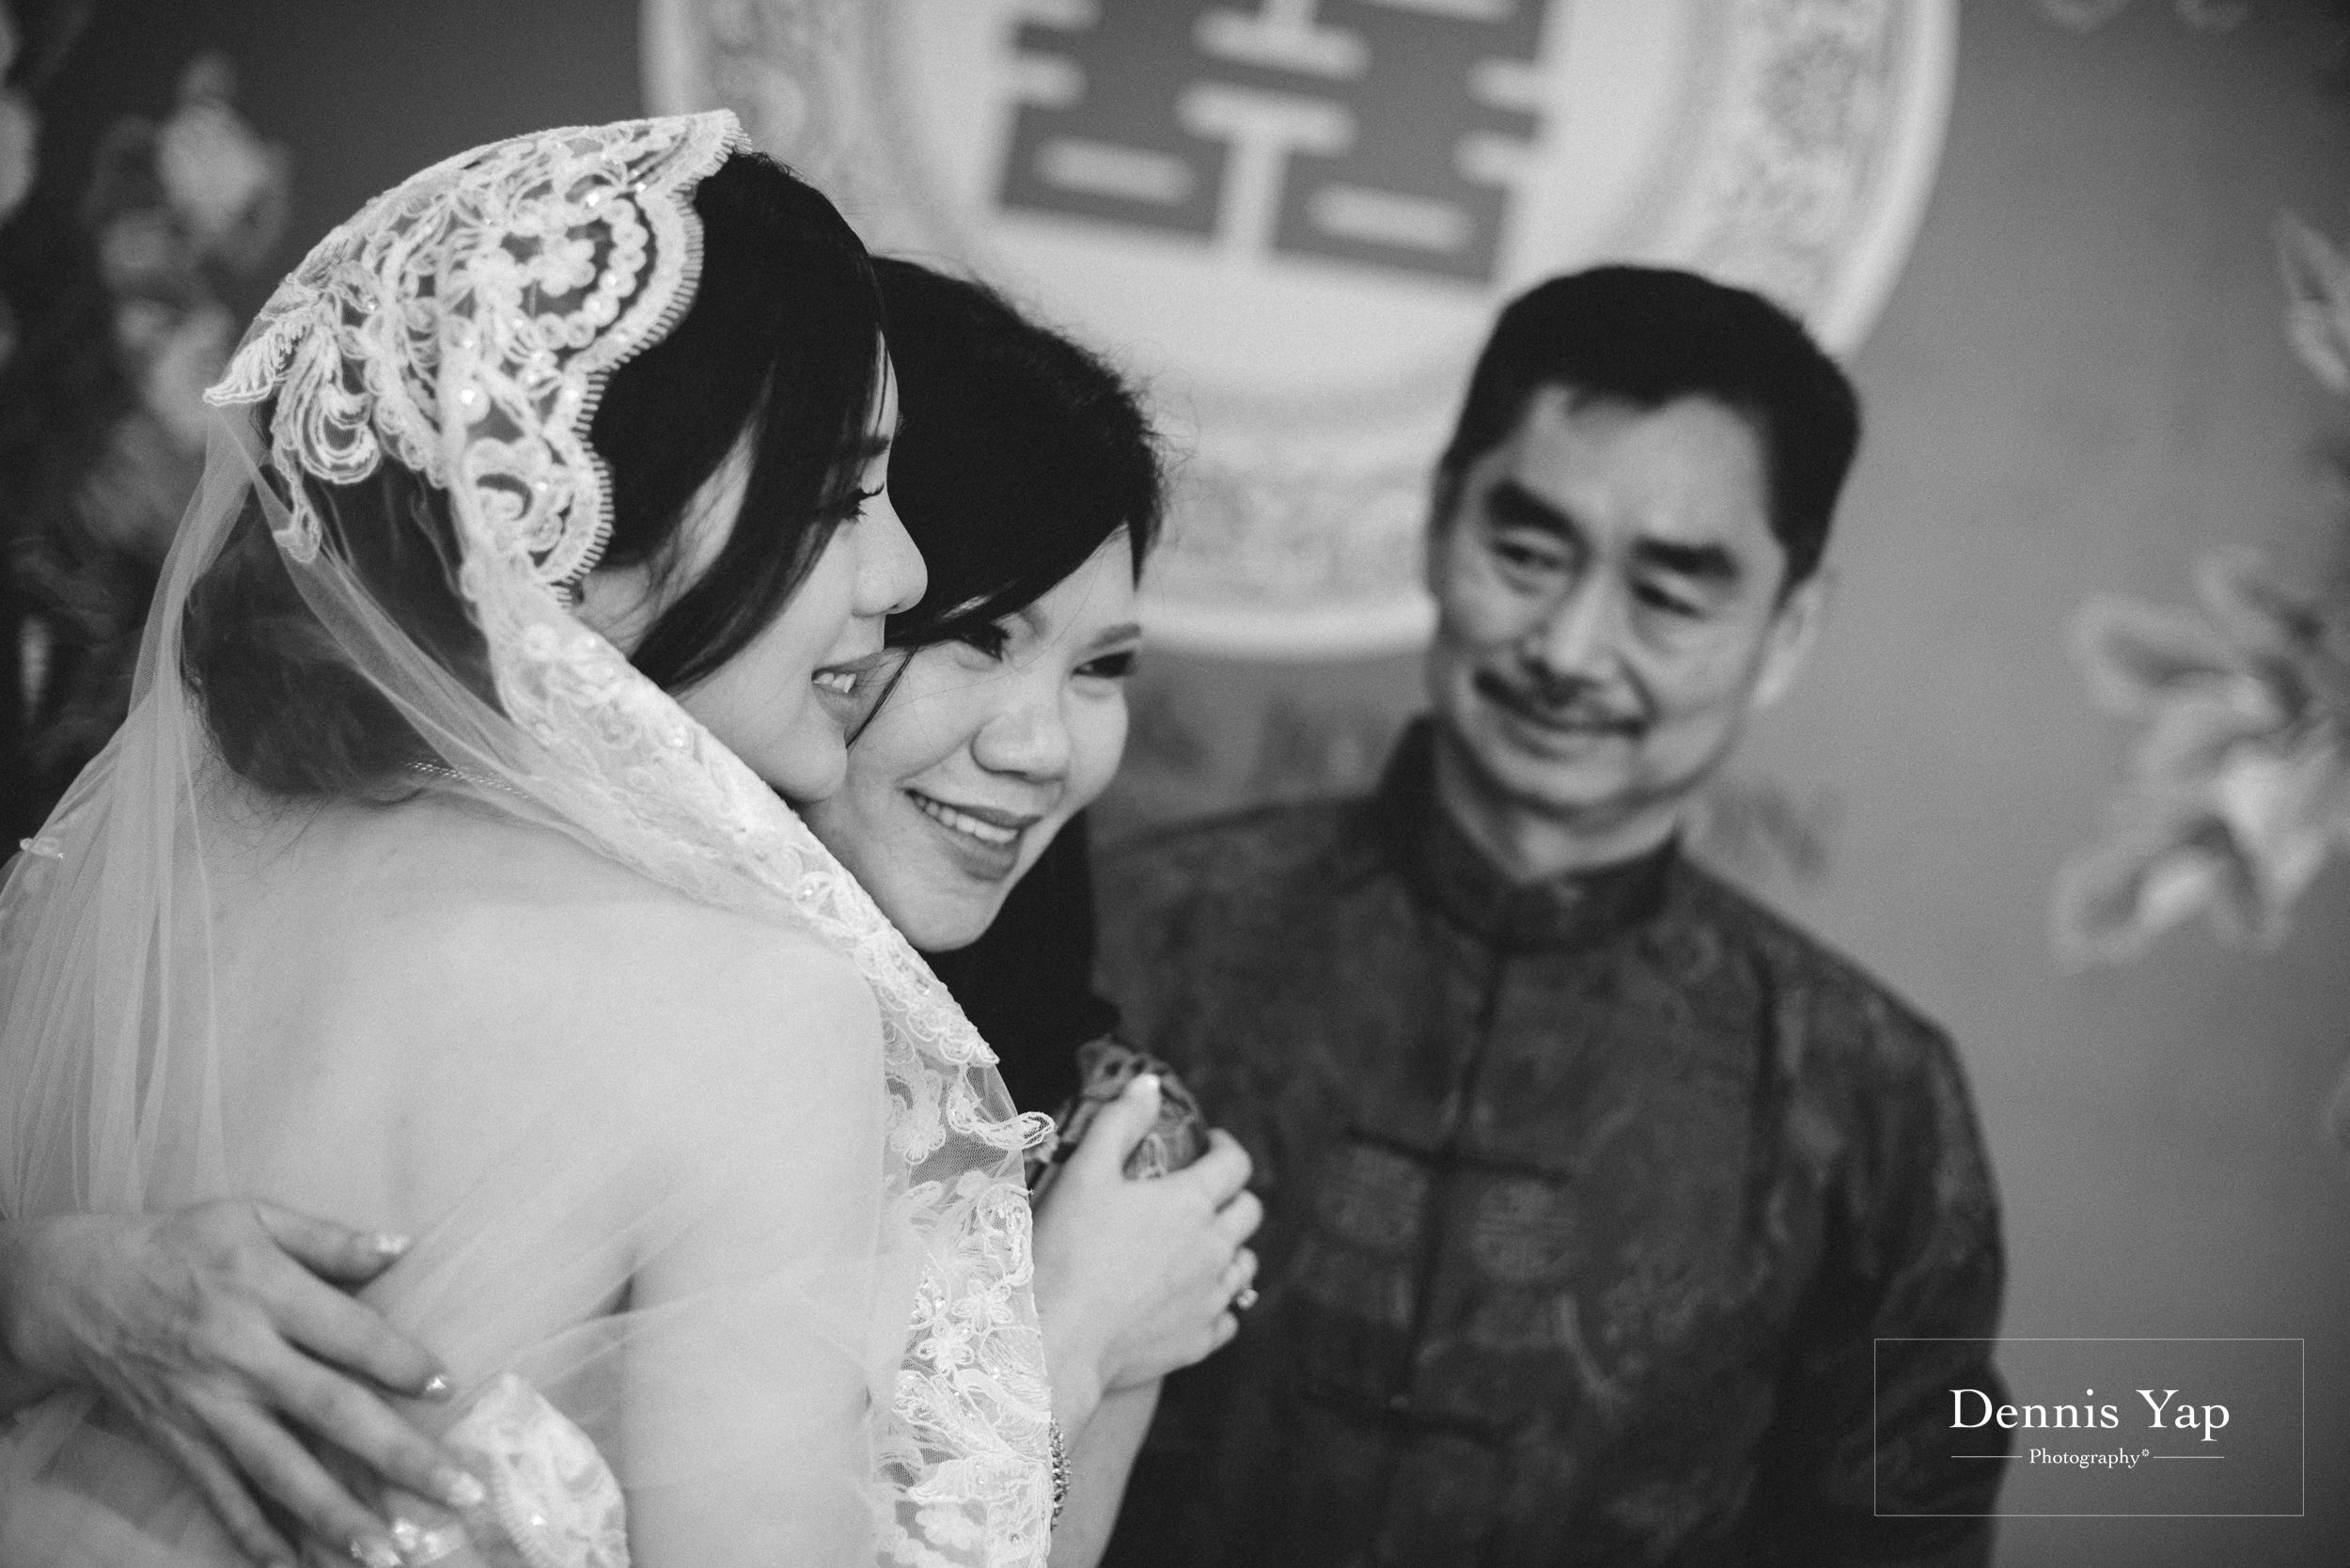 johnson joanne wedding gate crash malaysia wedding photographer dennis yap botanic klang-19.jpg